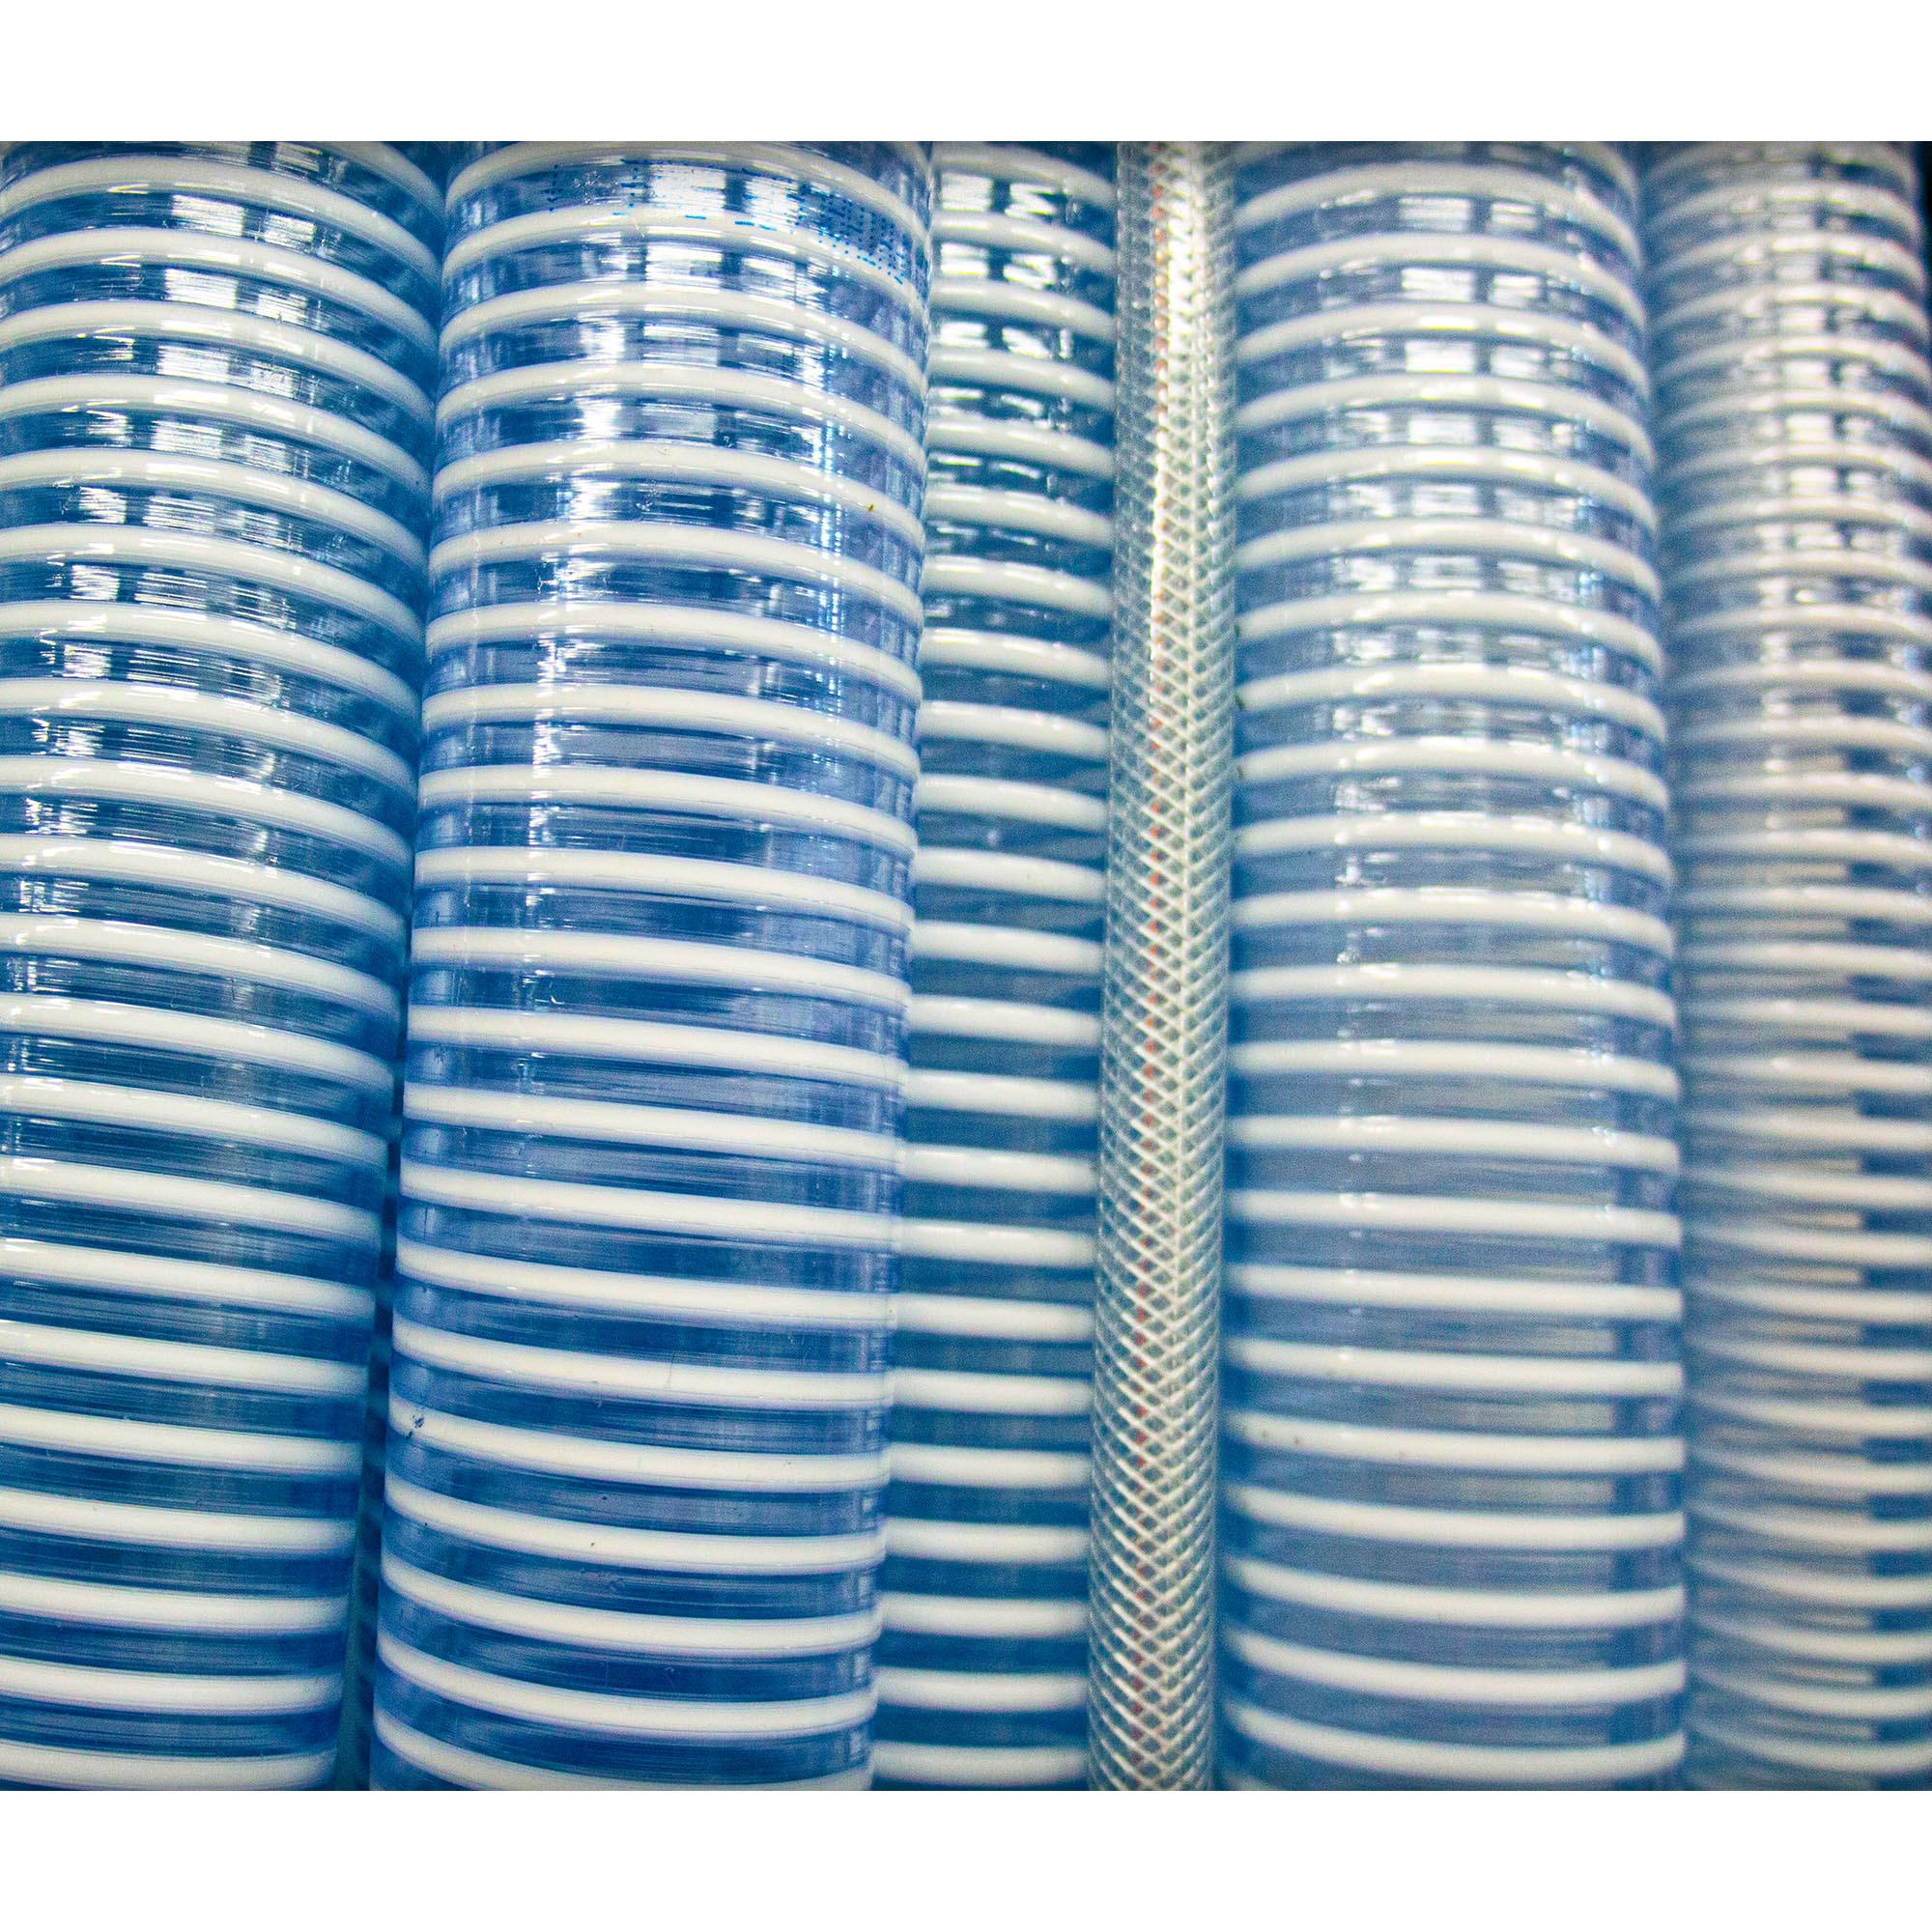 "EXAIR stocks 3/8"", 1/2"", 3/4"", 1"", 1-1/4"", 1-1/2"", 2"", 2-1/2"" and 3"" I.D. PVC hose in lengths up to 50'."